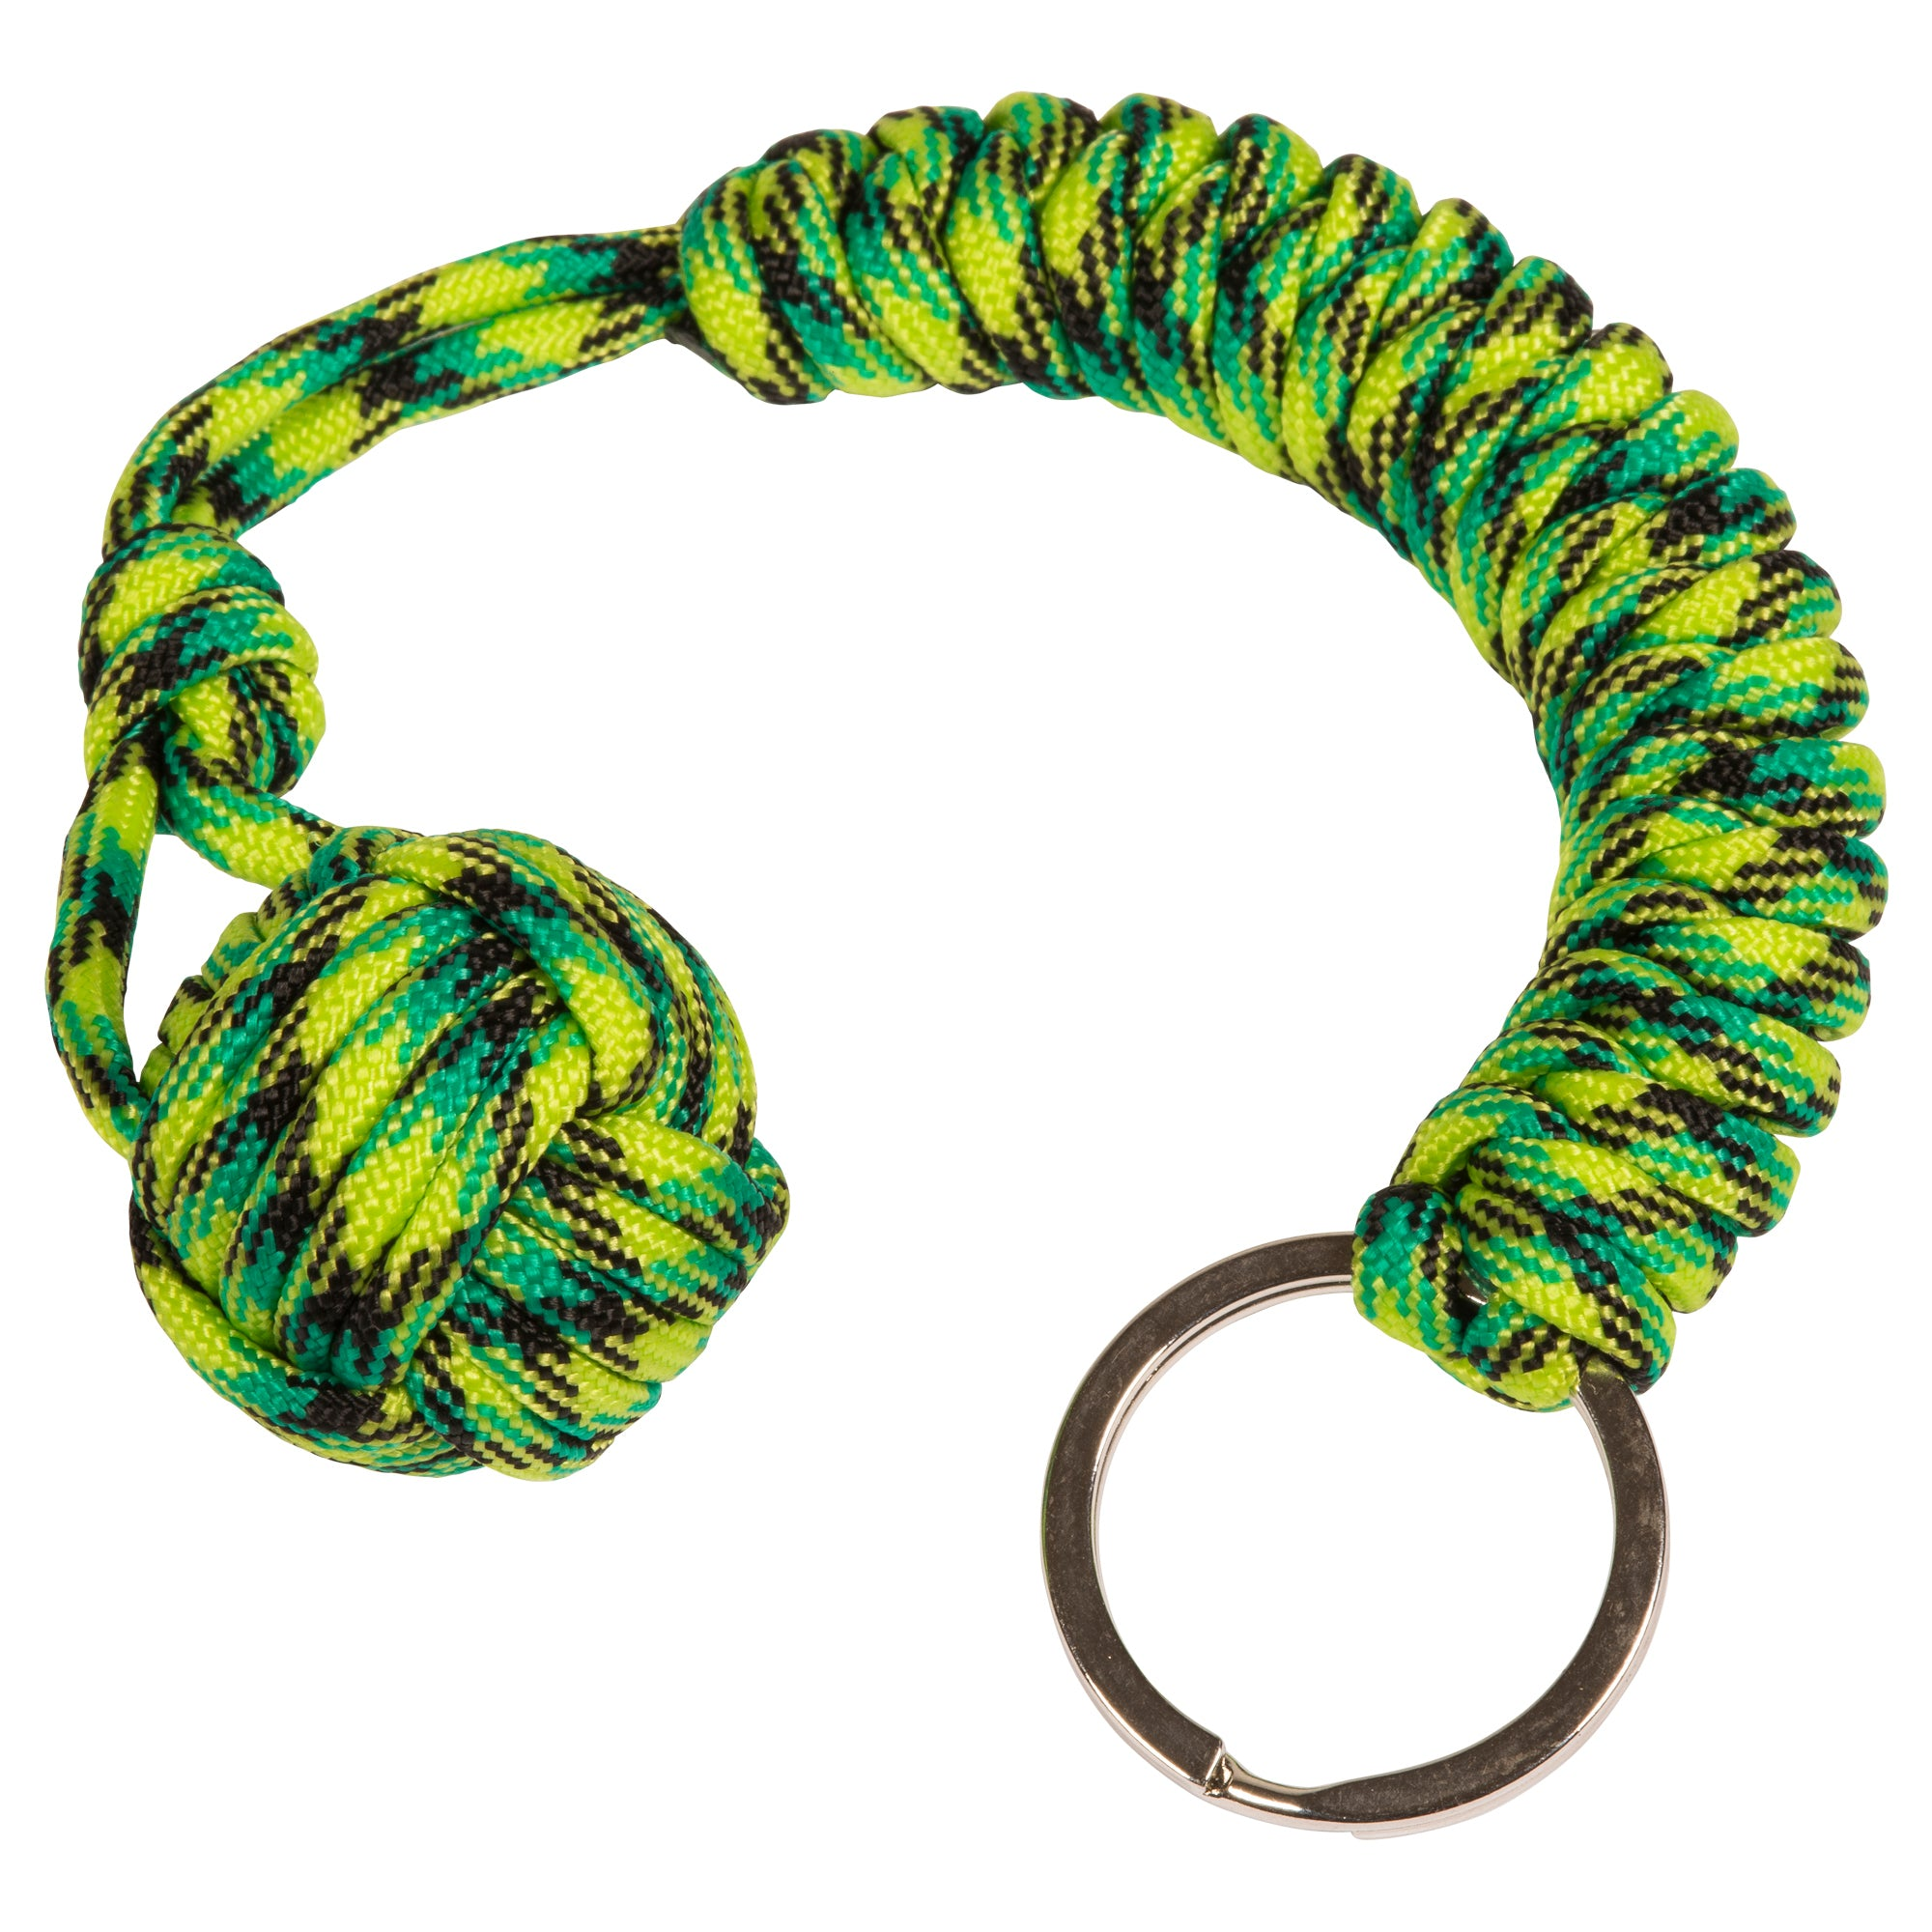 Green Lizard Monkey Fist Paracord Keychain 2e52fa1fae68